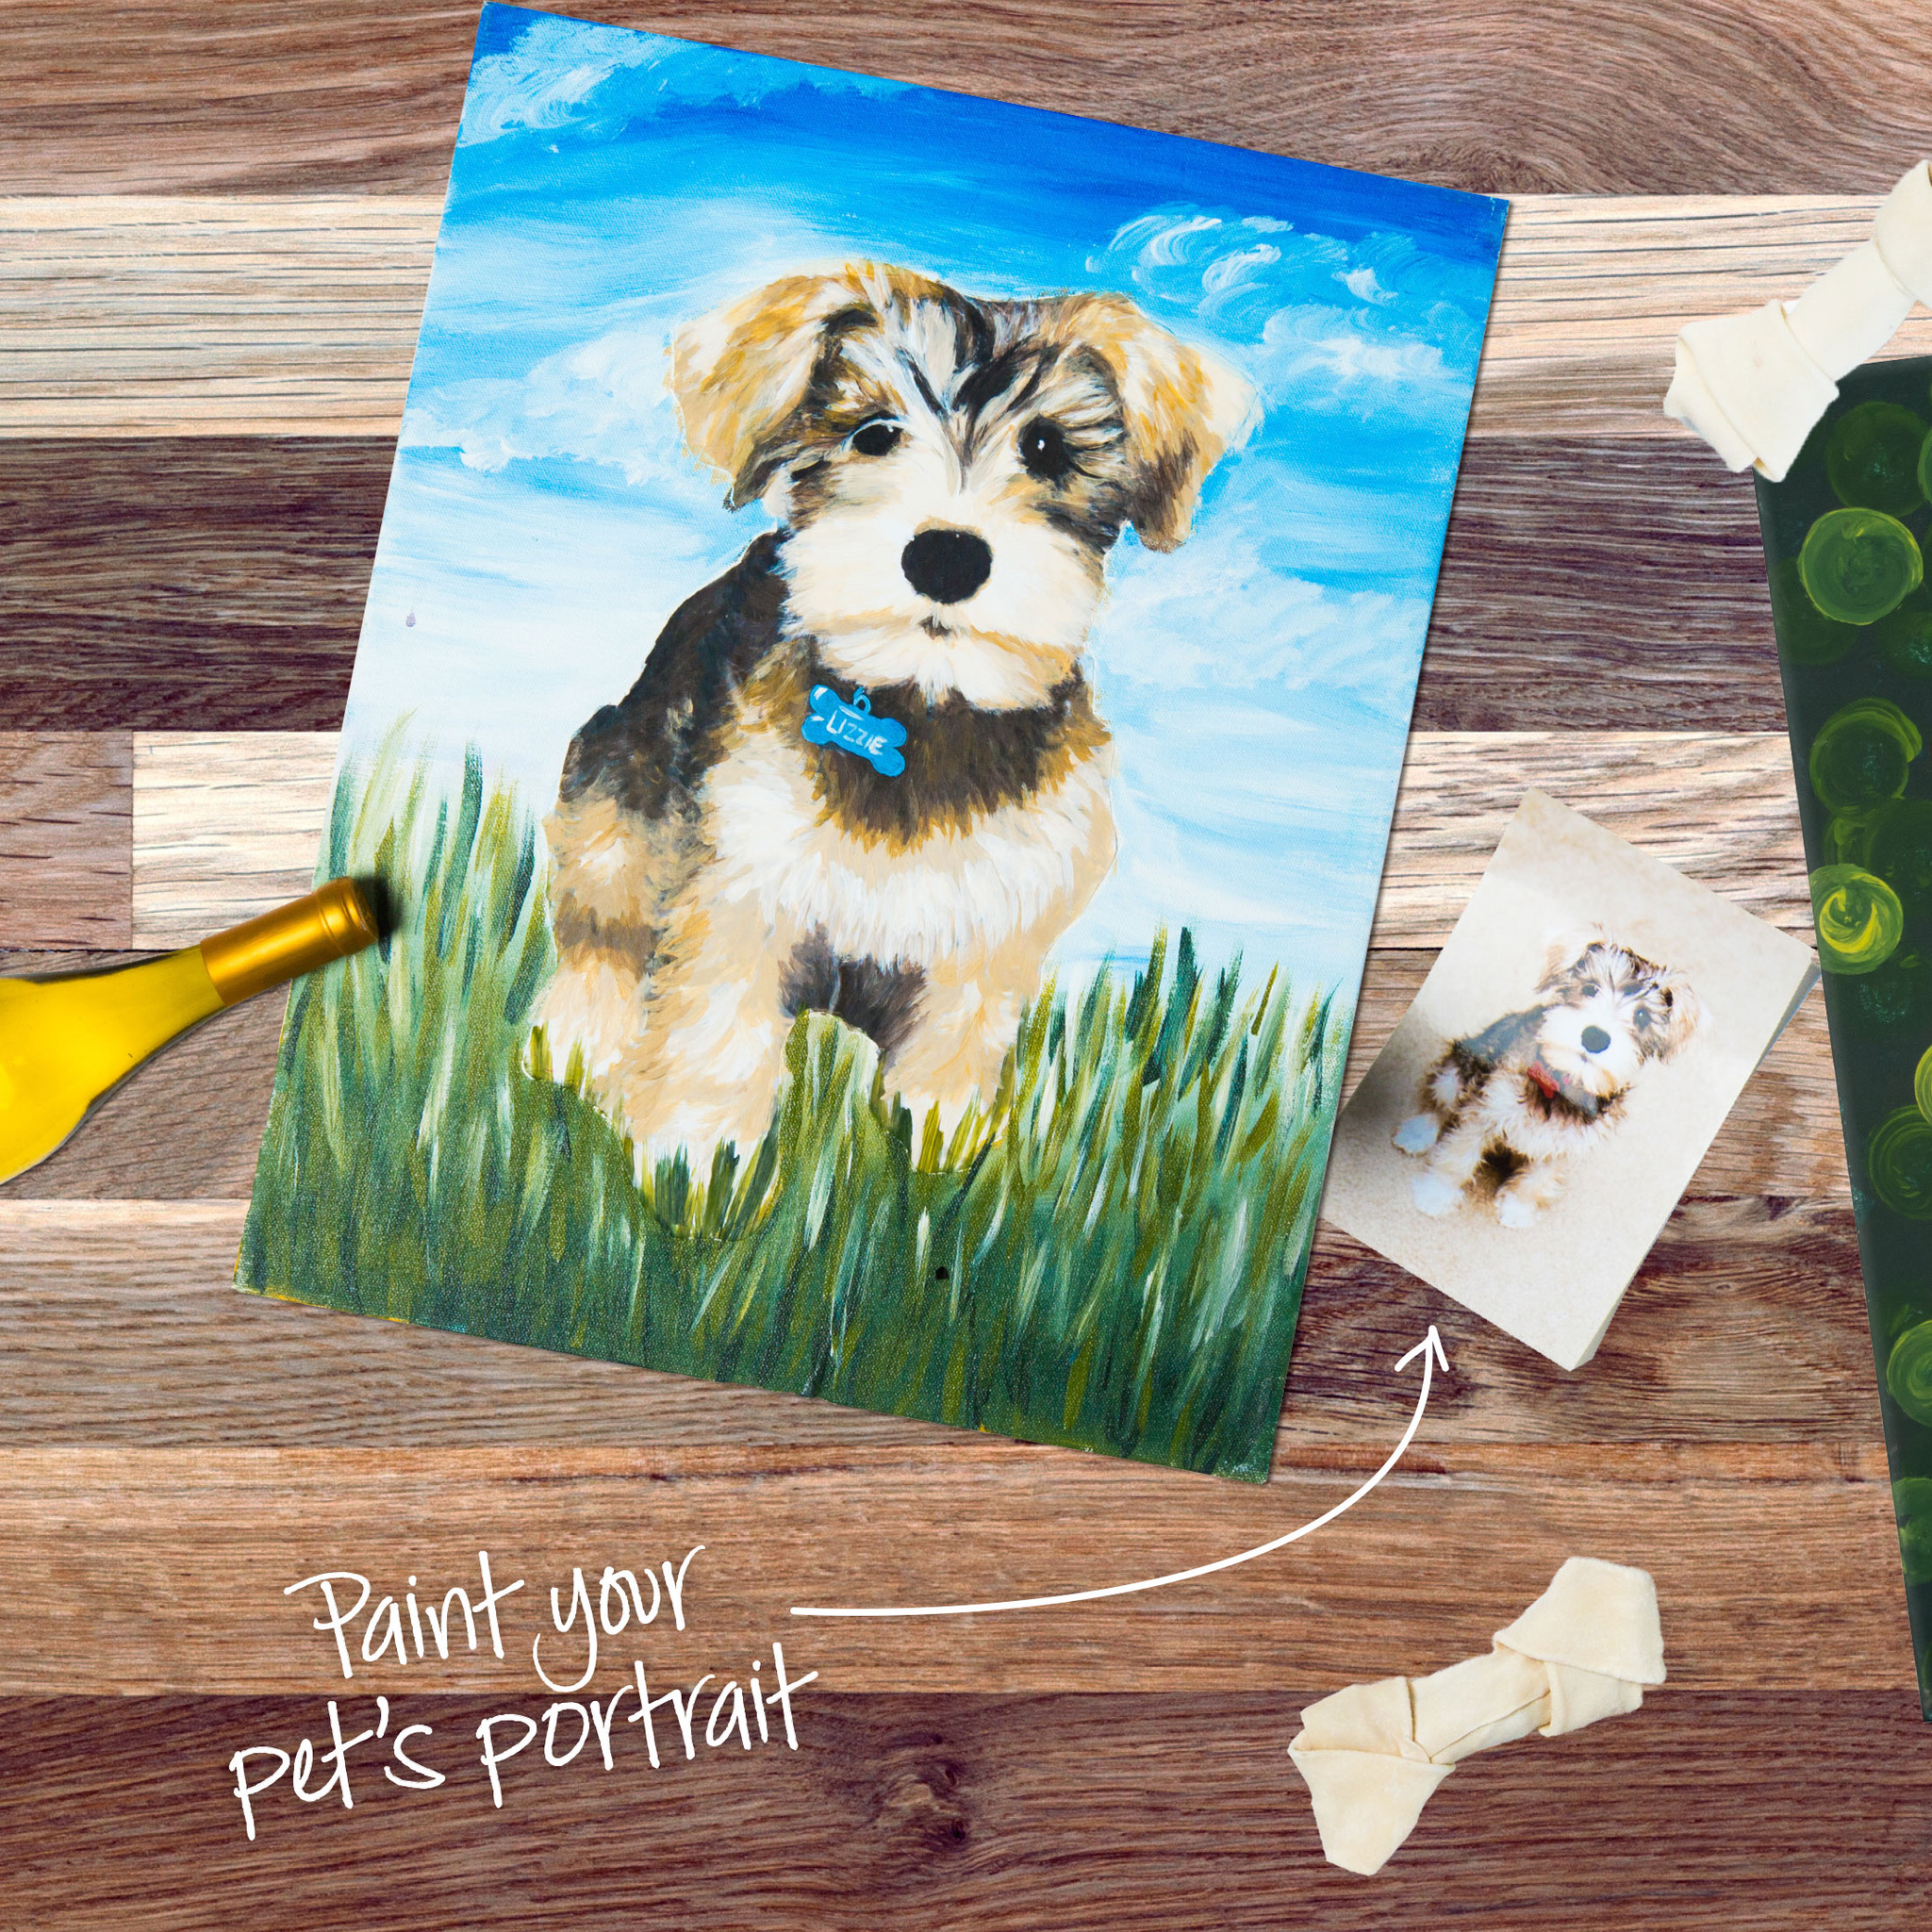 Paint your own pet!